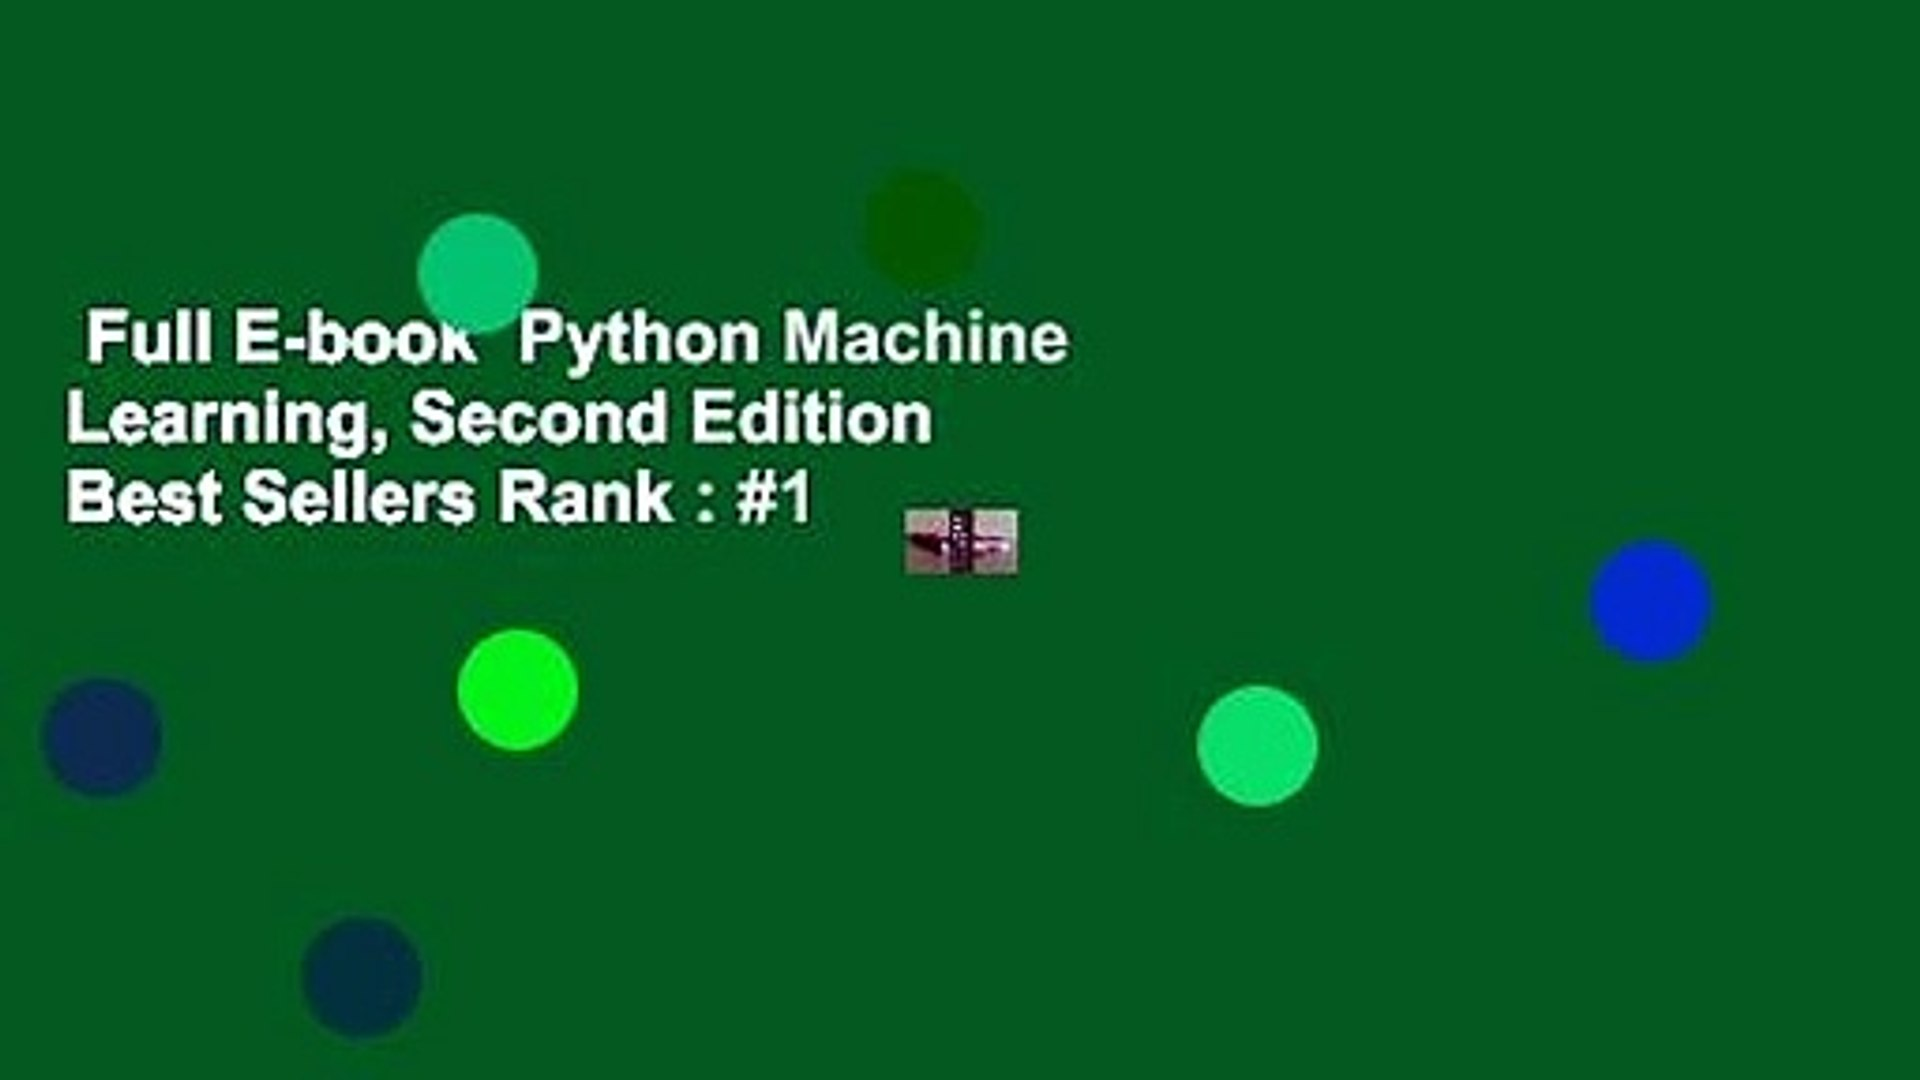 Full E-book Python Machine Learning, Second Edition Best Sellers Rank : #1